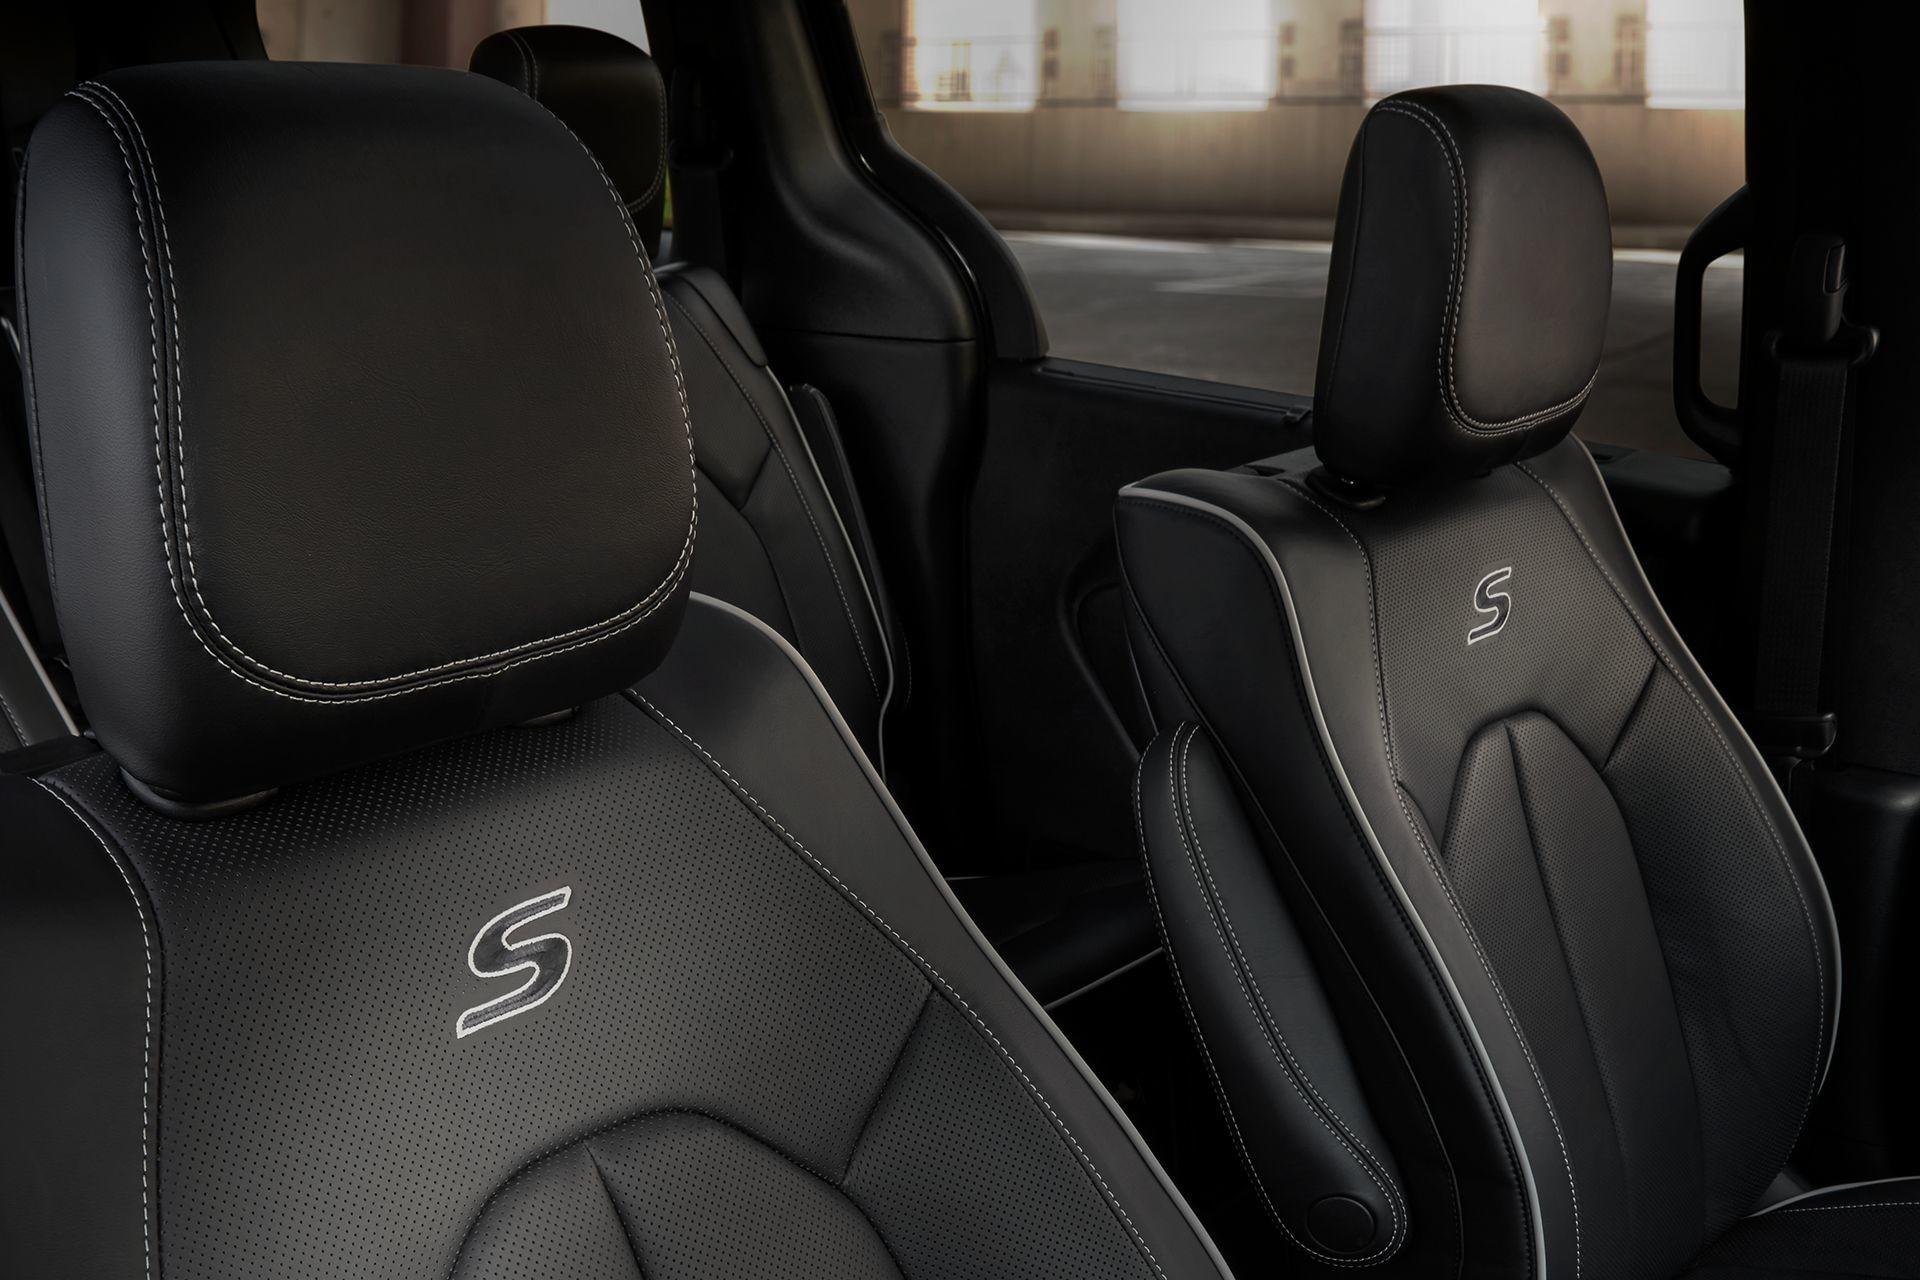 2019 Chrysler Pacifica black leather seats interior